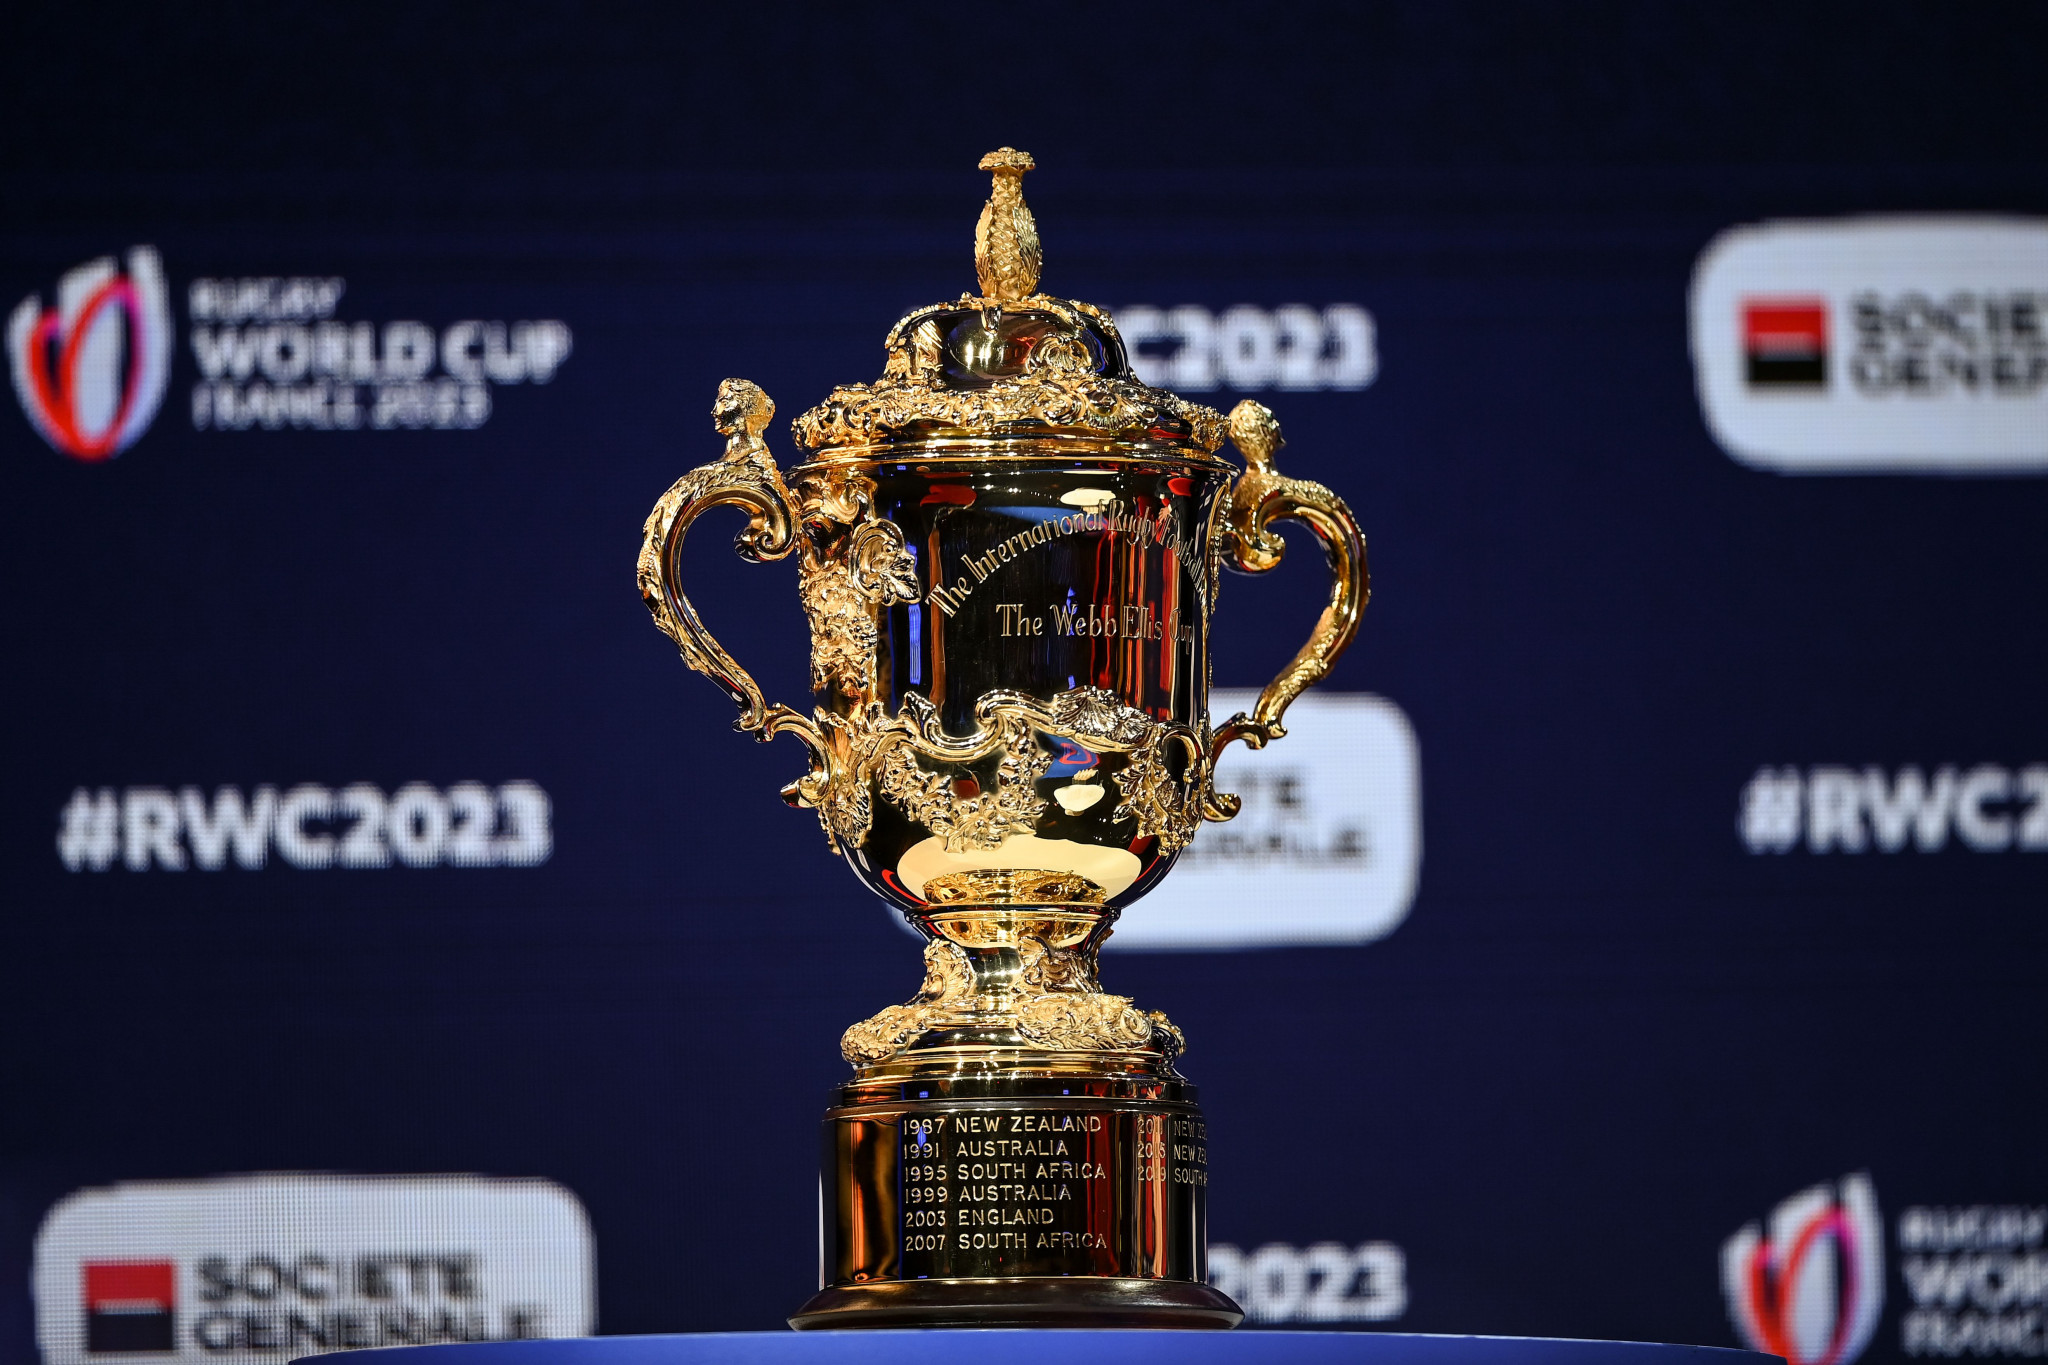 Organisers place 250,000 tickets on sale as two-year countdown marked to 2023 Rugby World Cup